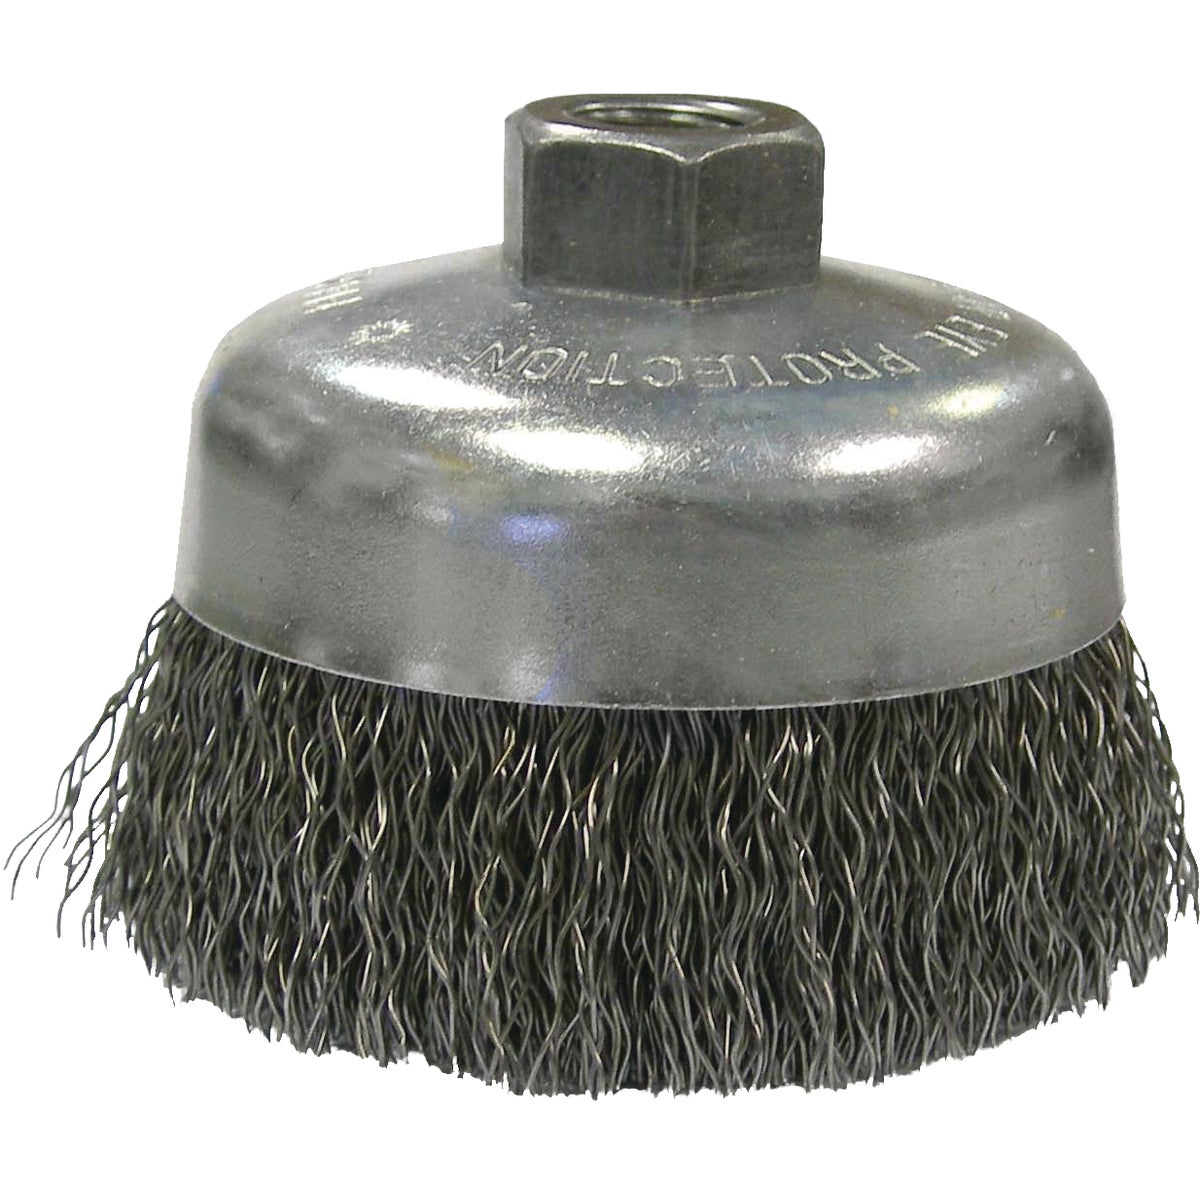 "6"" CRIMPD WIRE CUP BRUSH"